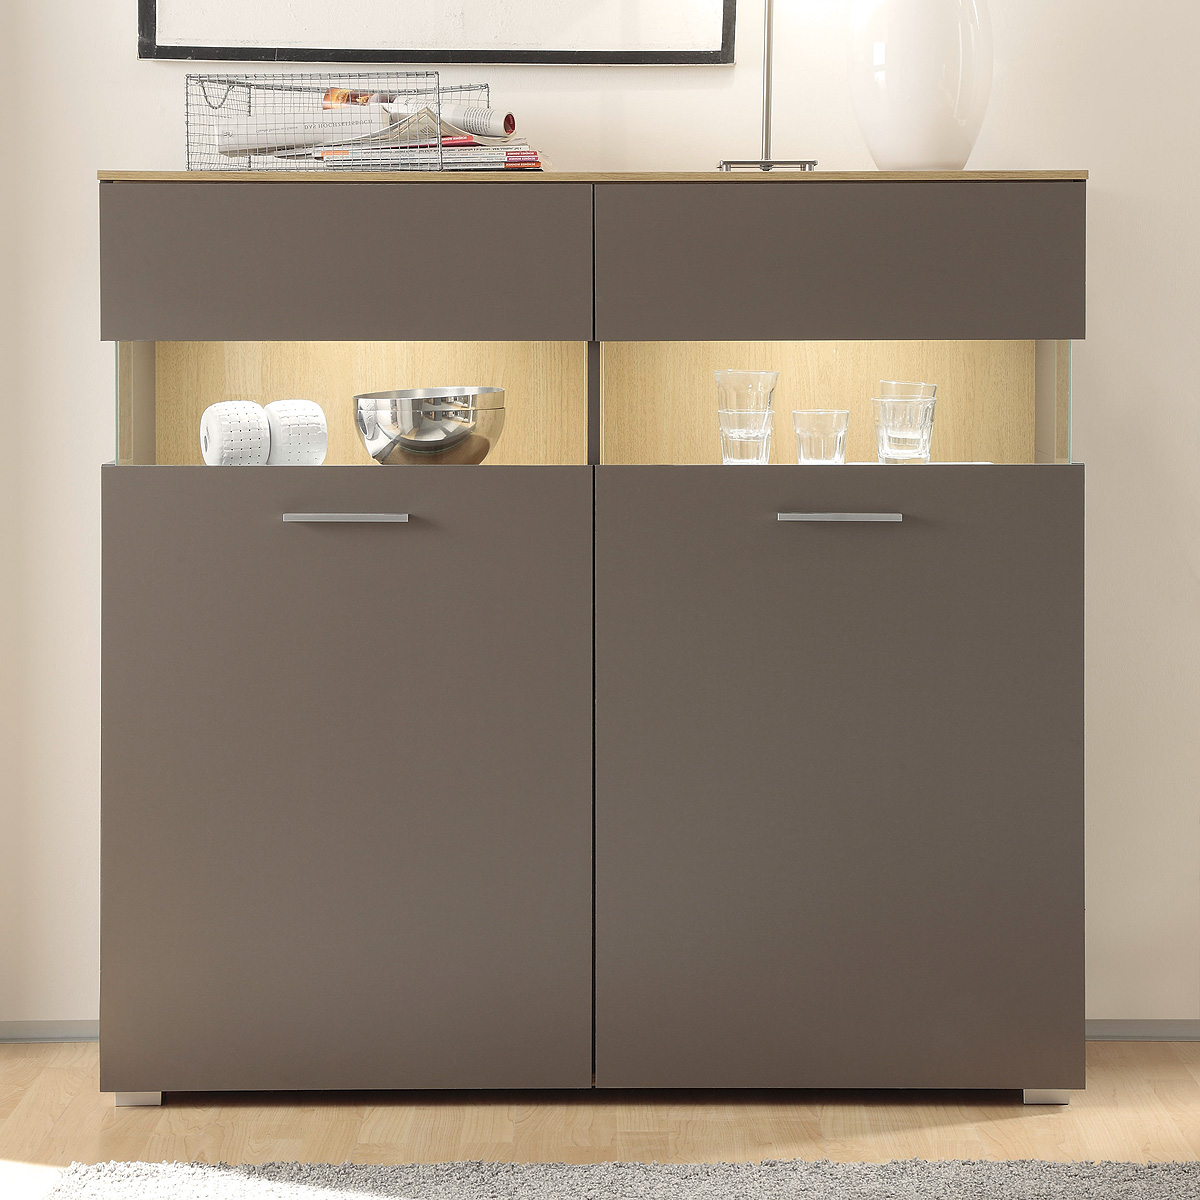 kommode 2 xero highboard schrank vitrine in grau und stone oak eiche ebay. Black Bedroom Furniture Sets. Home Design Ideas